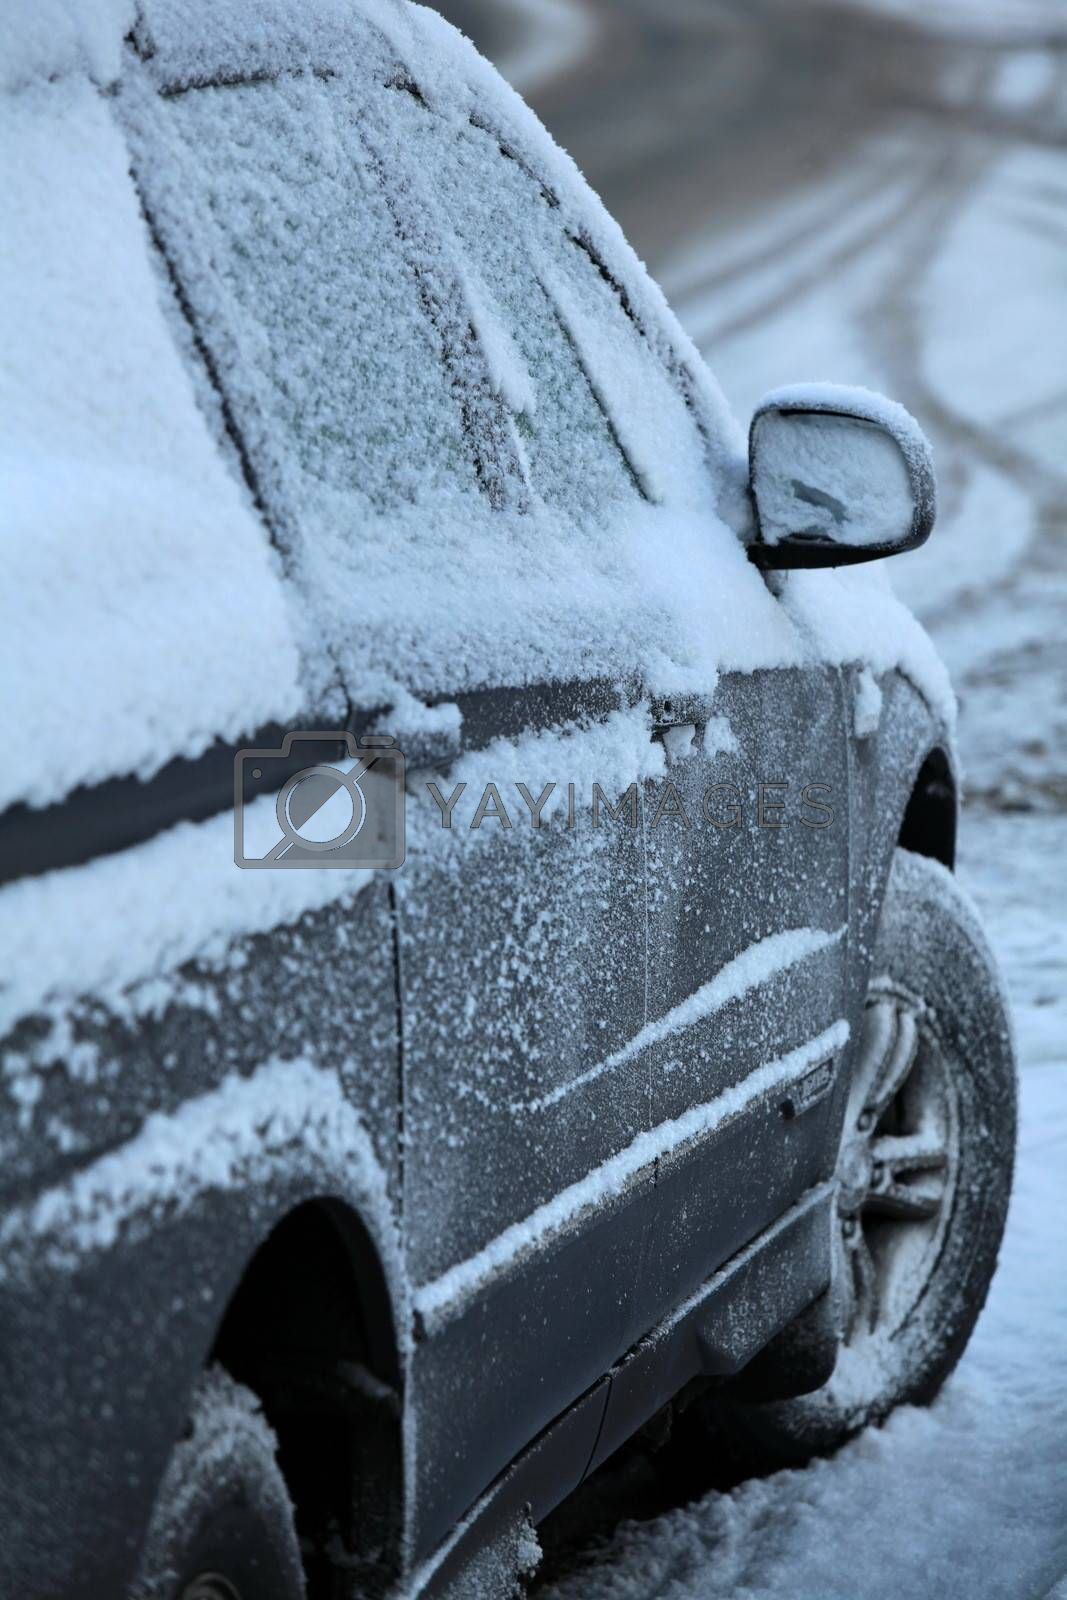 Snow and ice over the car